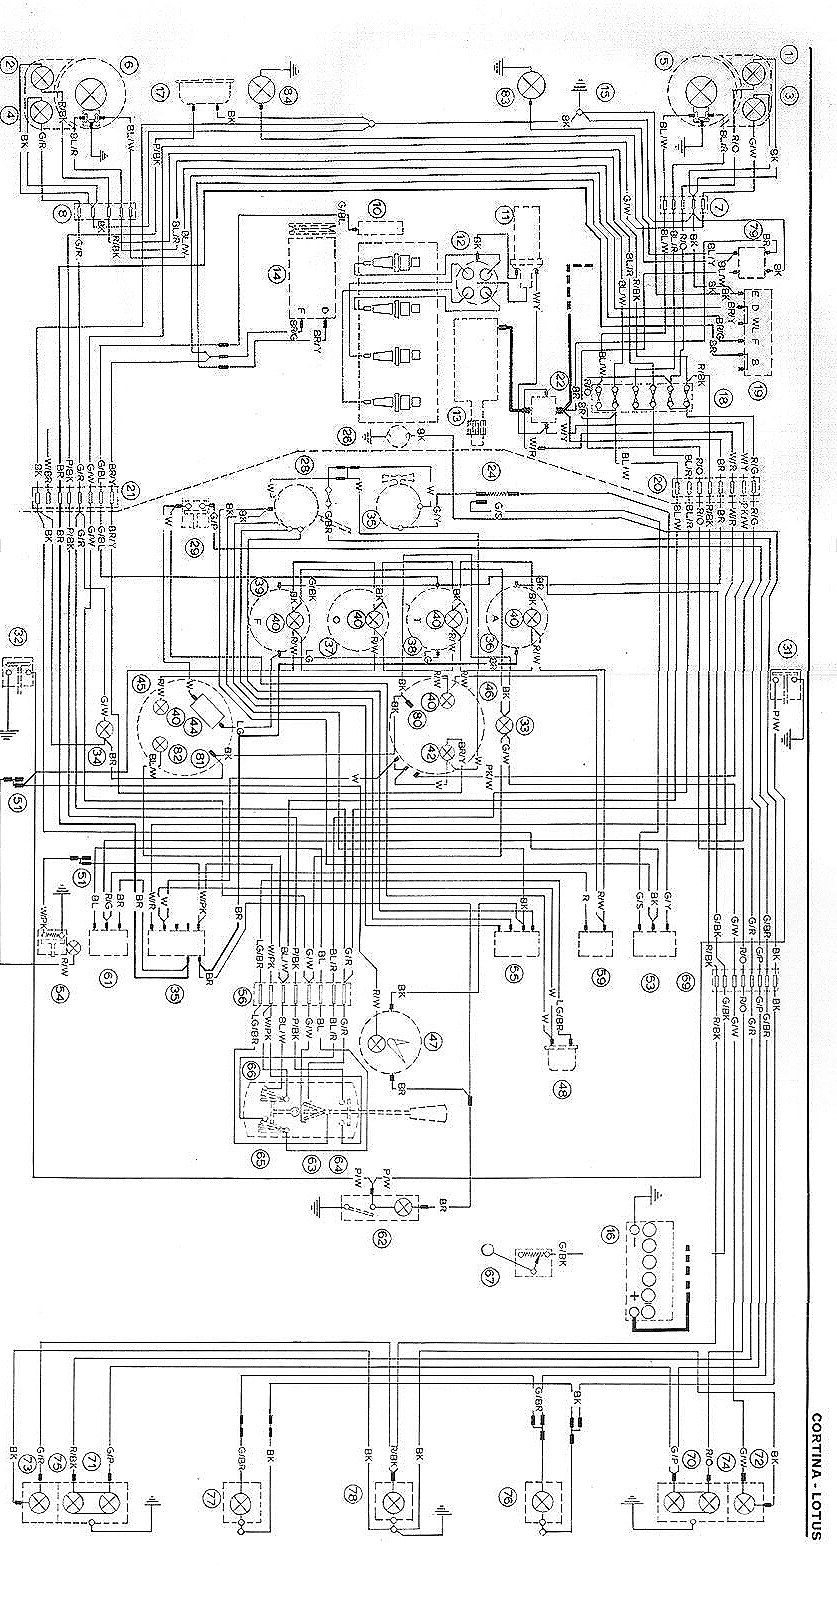 lhdmk2 lotus cortina wiring diagrams ford cortina wiring diagram at webbmarketing.co